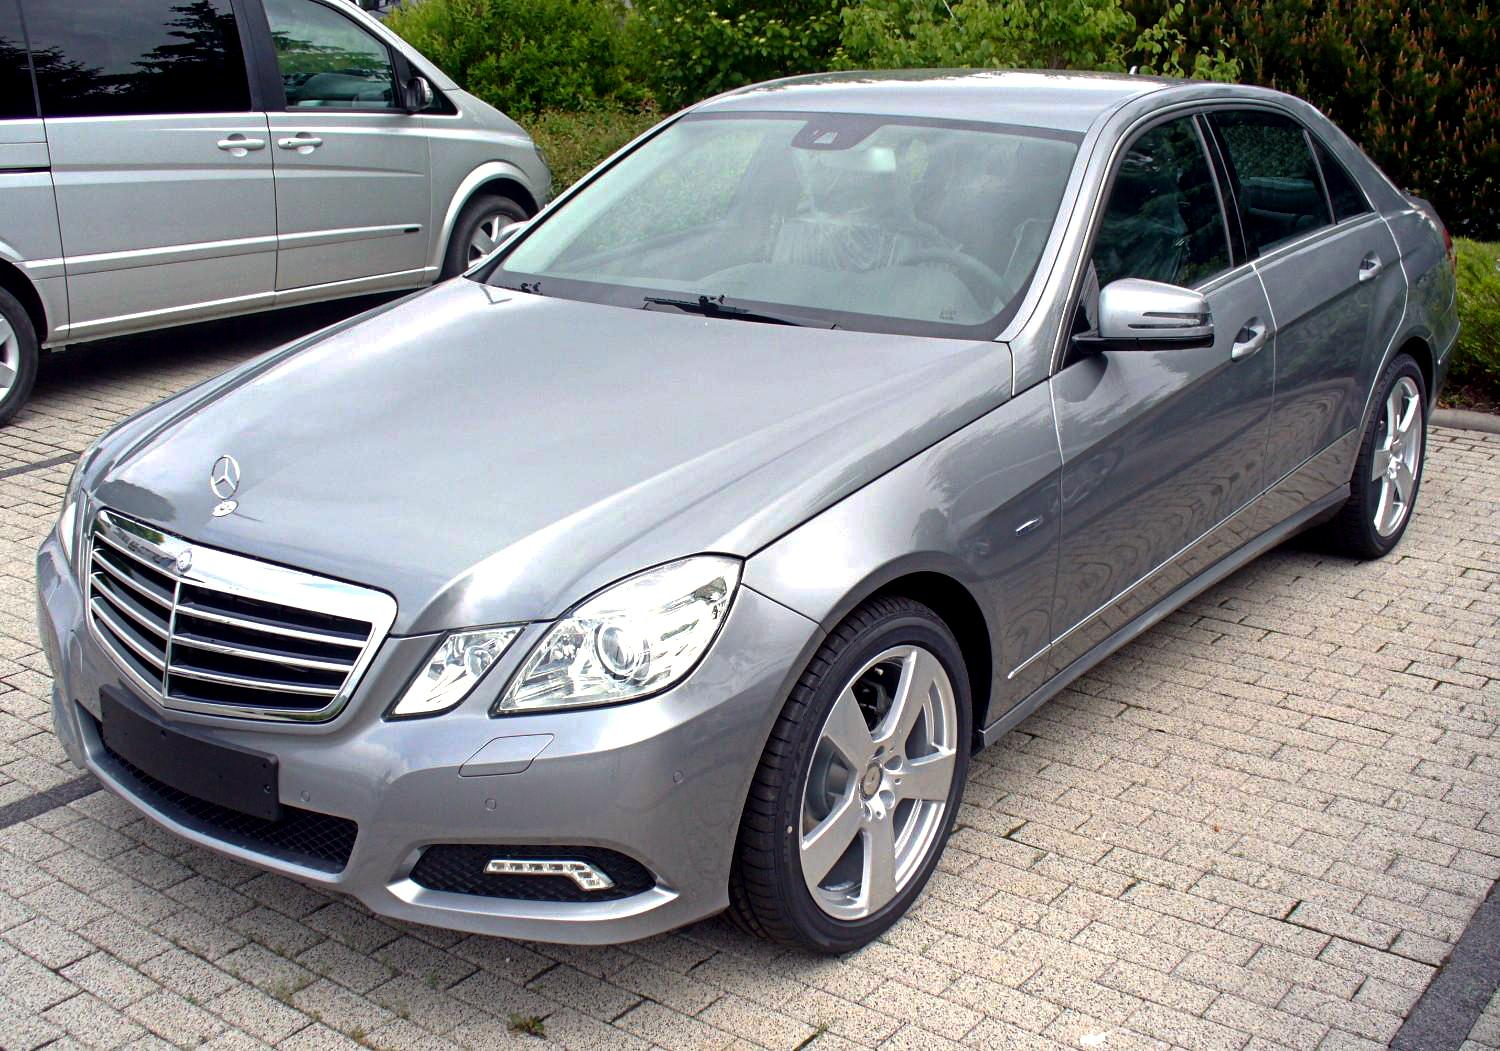 Mercedes benz e 350 avantgarde picture 6 reviews news for E 350 mercedes benz